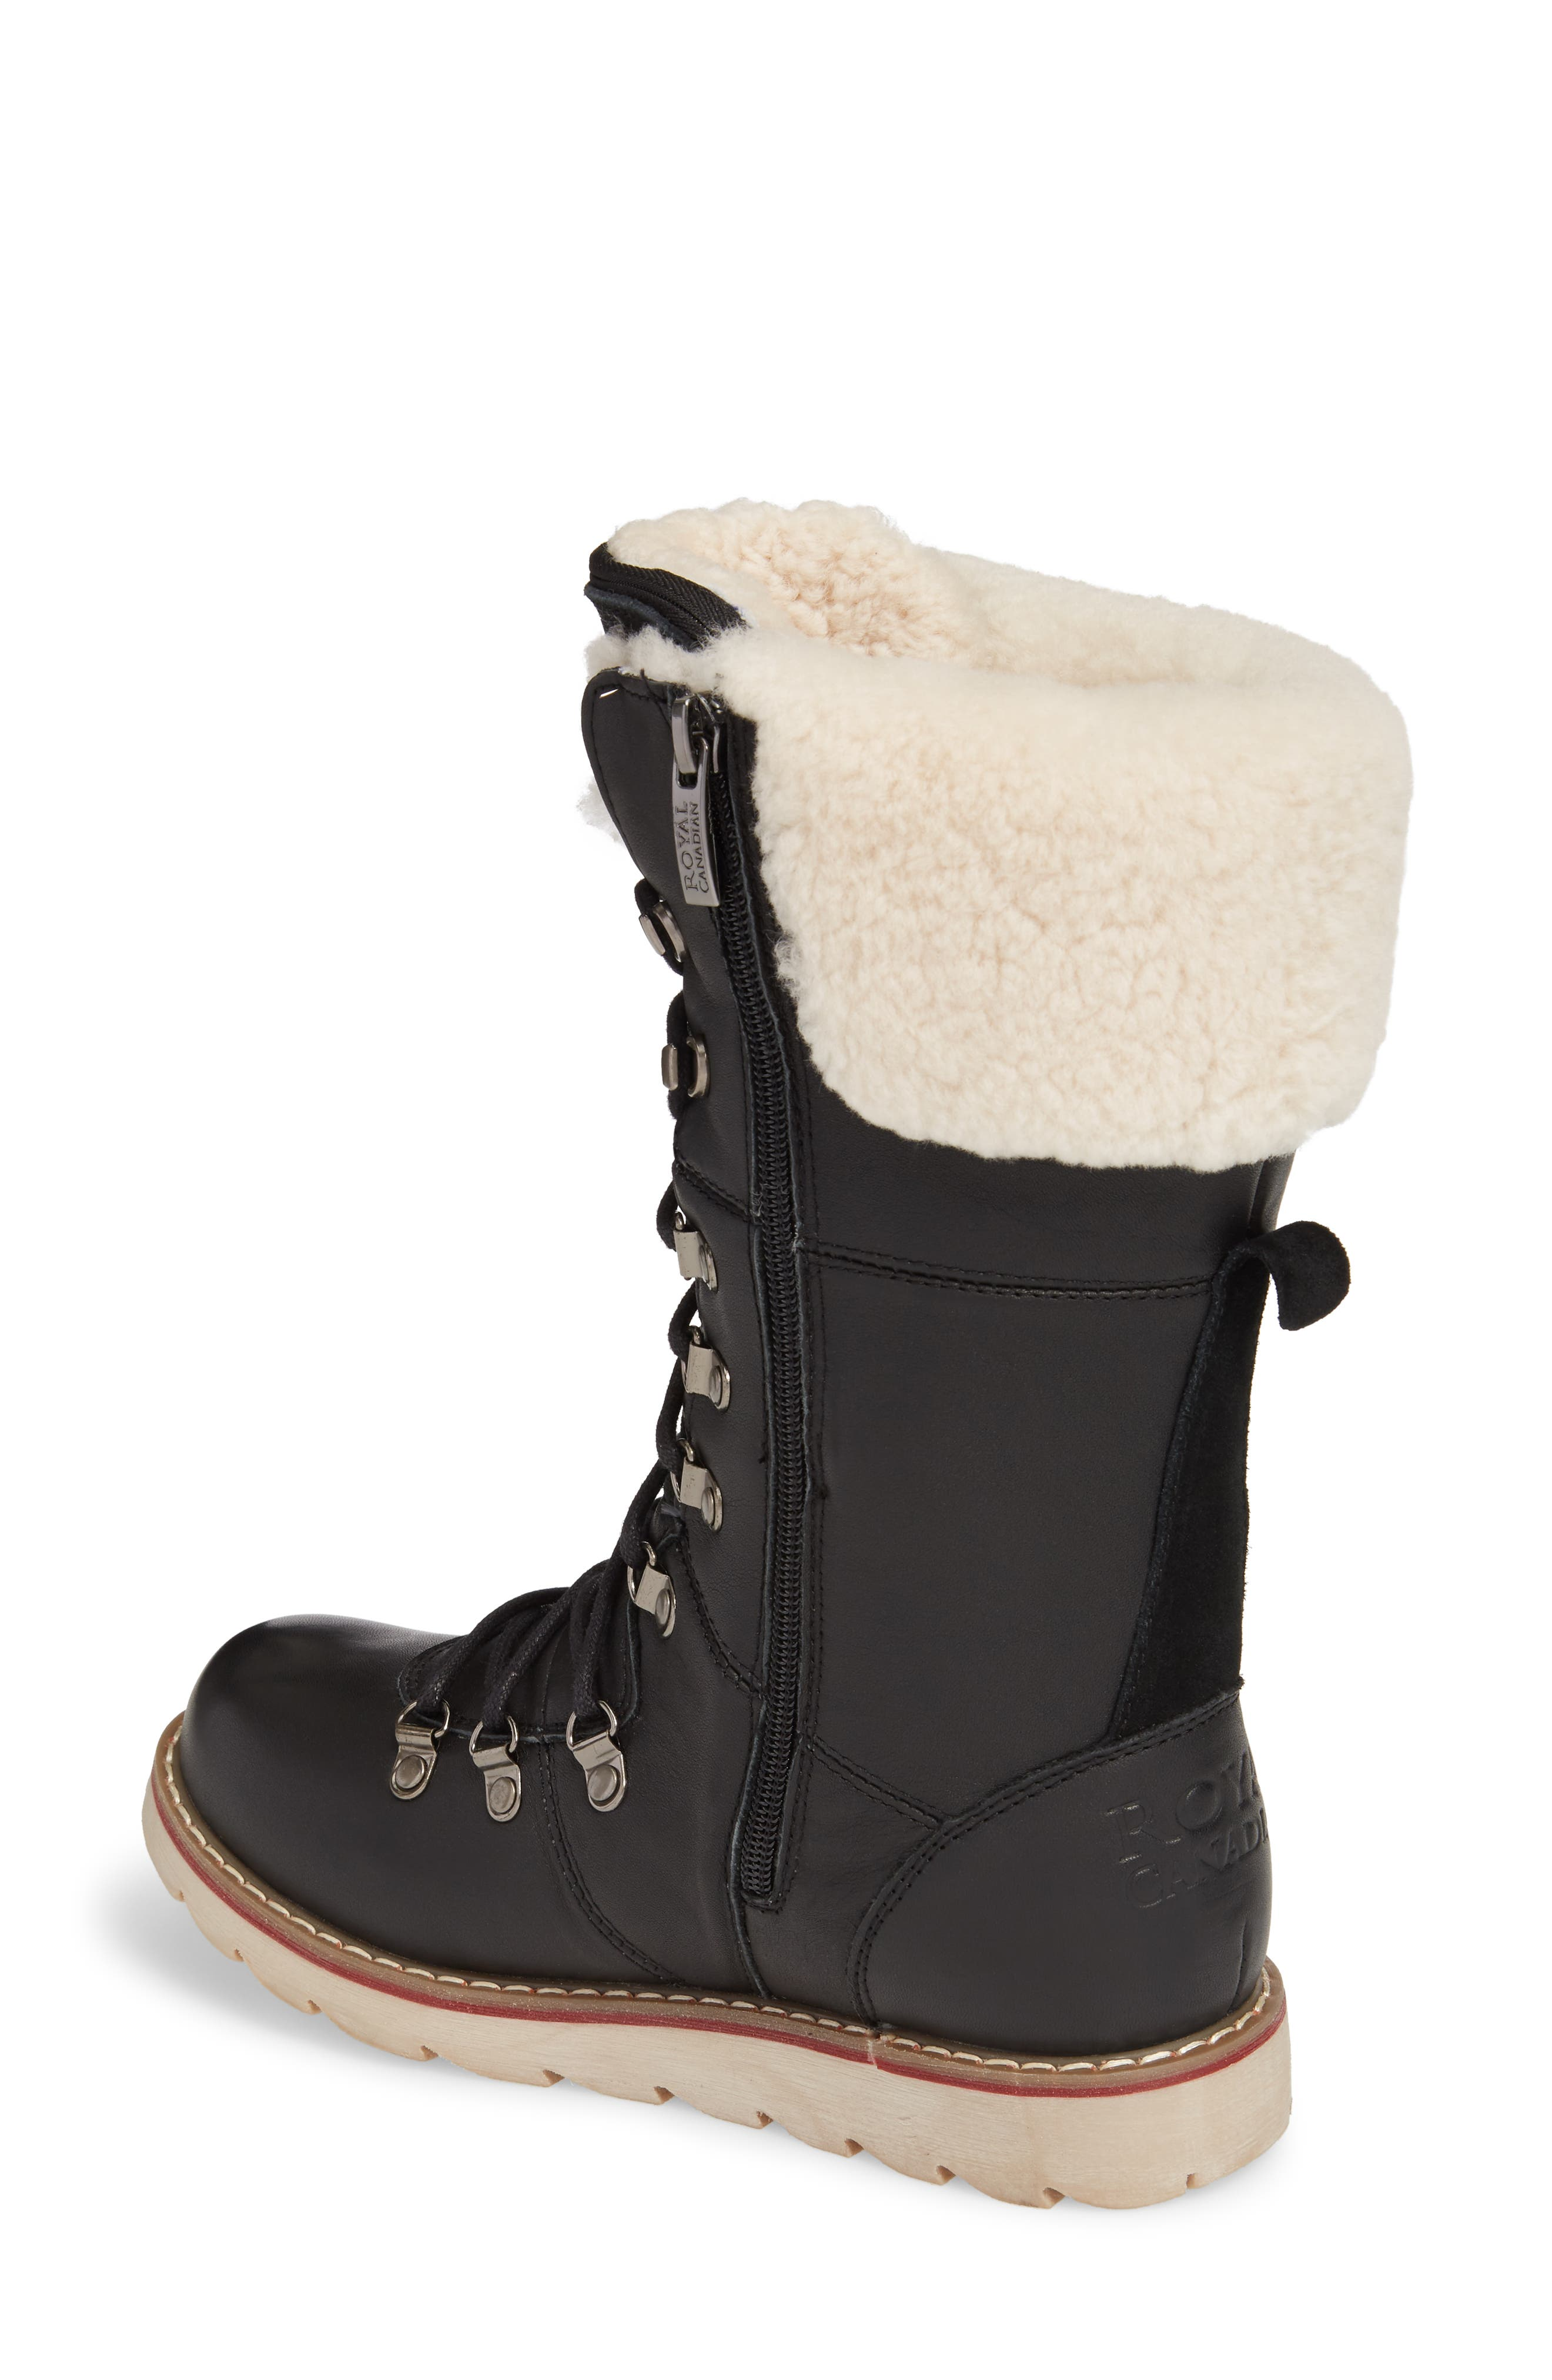 Louise Waterproof Snow Boot with Genuine Shearling Cuff,                             Alternate thumbnail 2, color,                             Black Leather